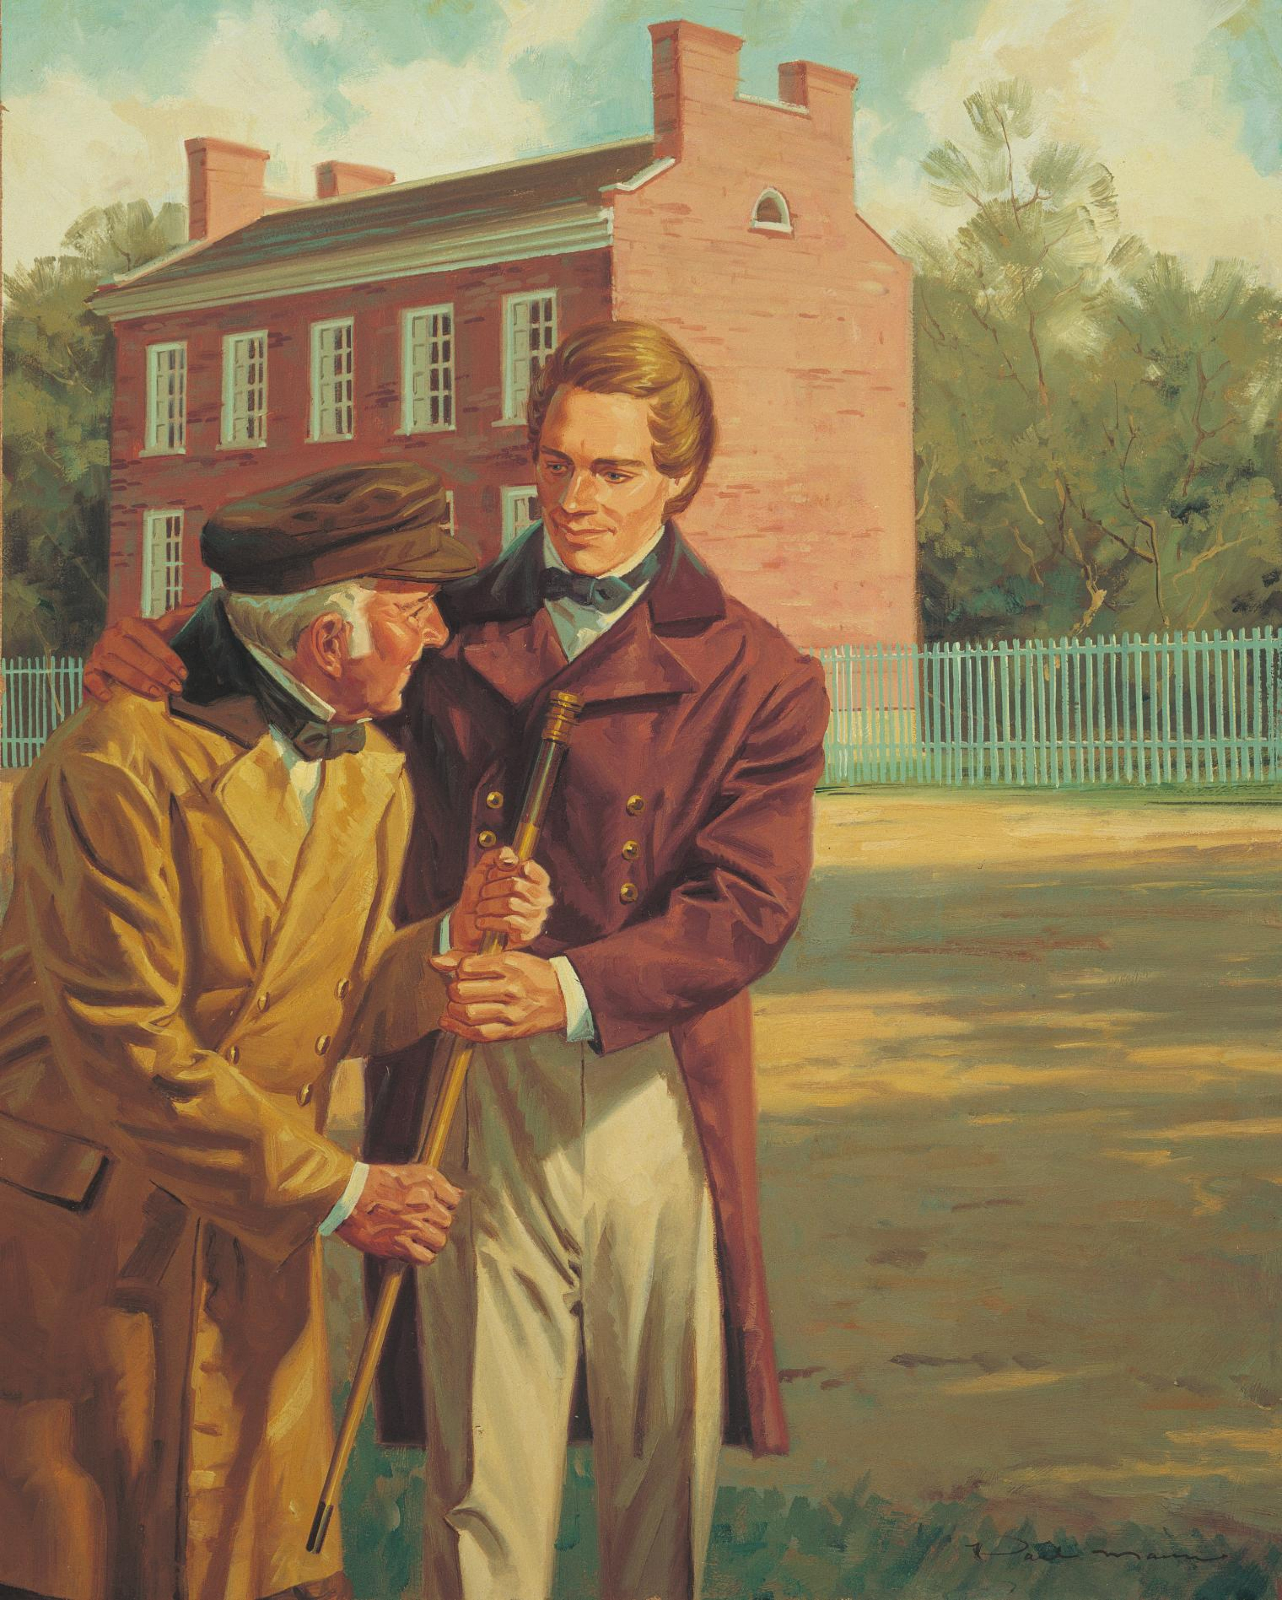 God Related Quotes Wallpaper Joseph Smith Giving His Cane To Joseph Knight Sr